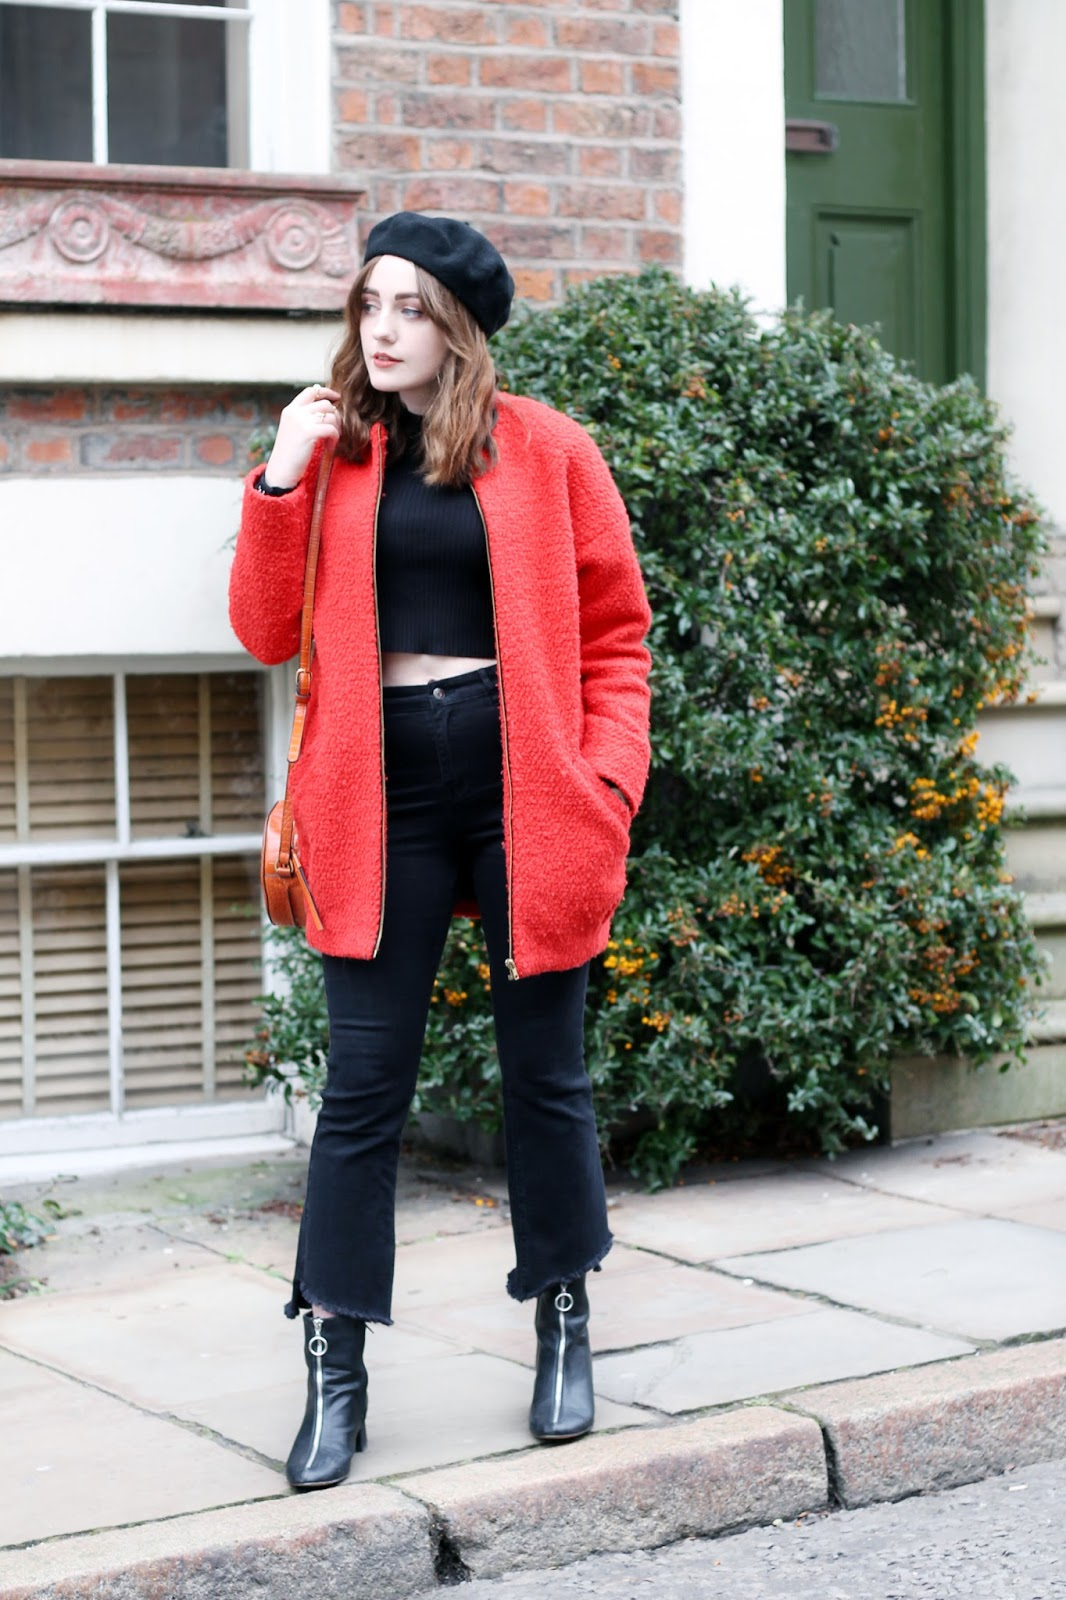 January 2018 outfit with orange and black